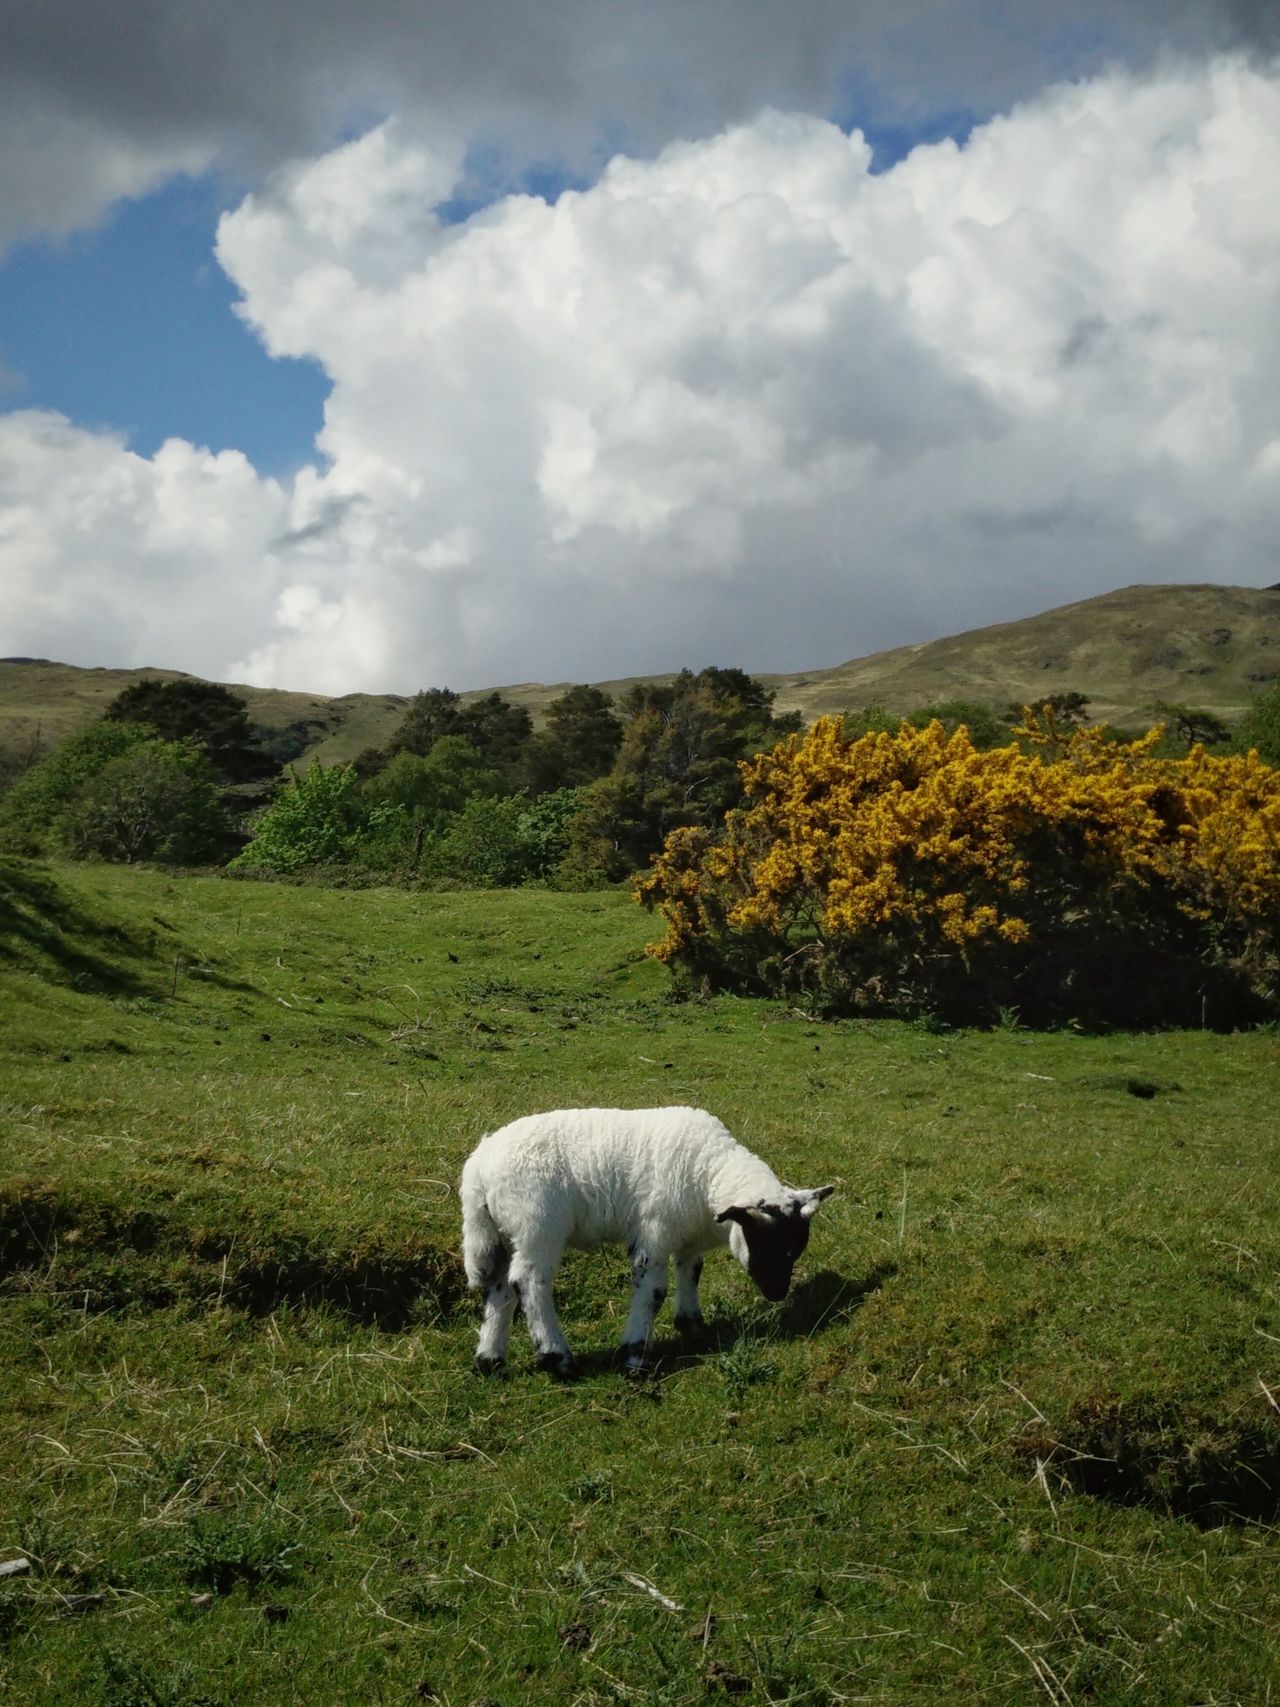 Animal Themes Beauty In Nature Domestic Animals Grass Grazing Landscape Nature Scotland Scottish Highlands Sheep Traveling